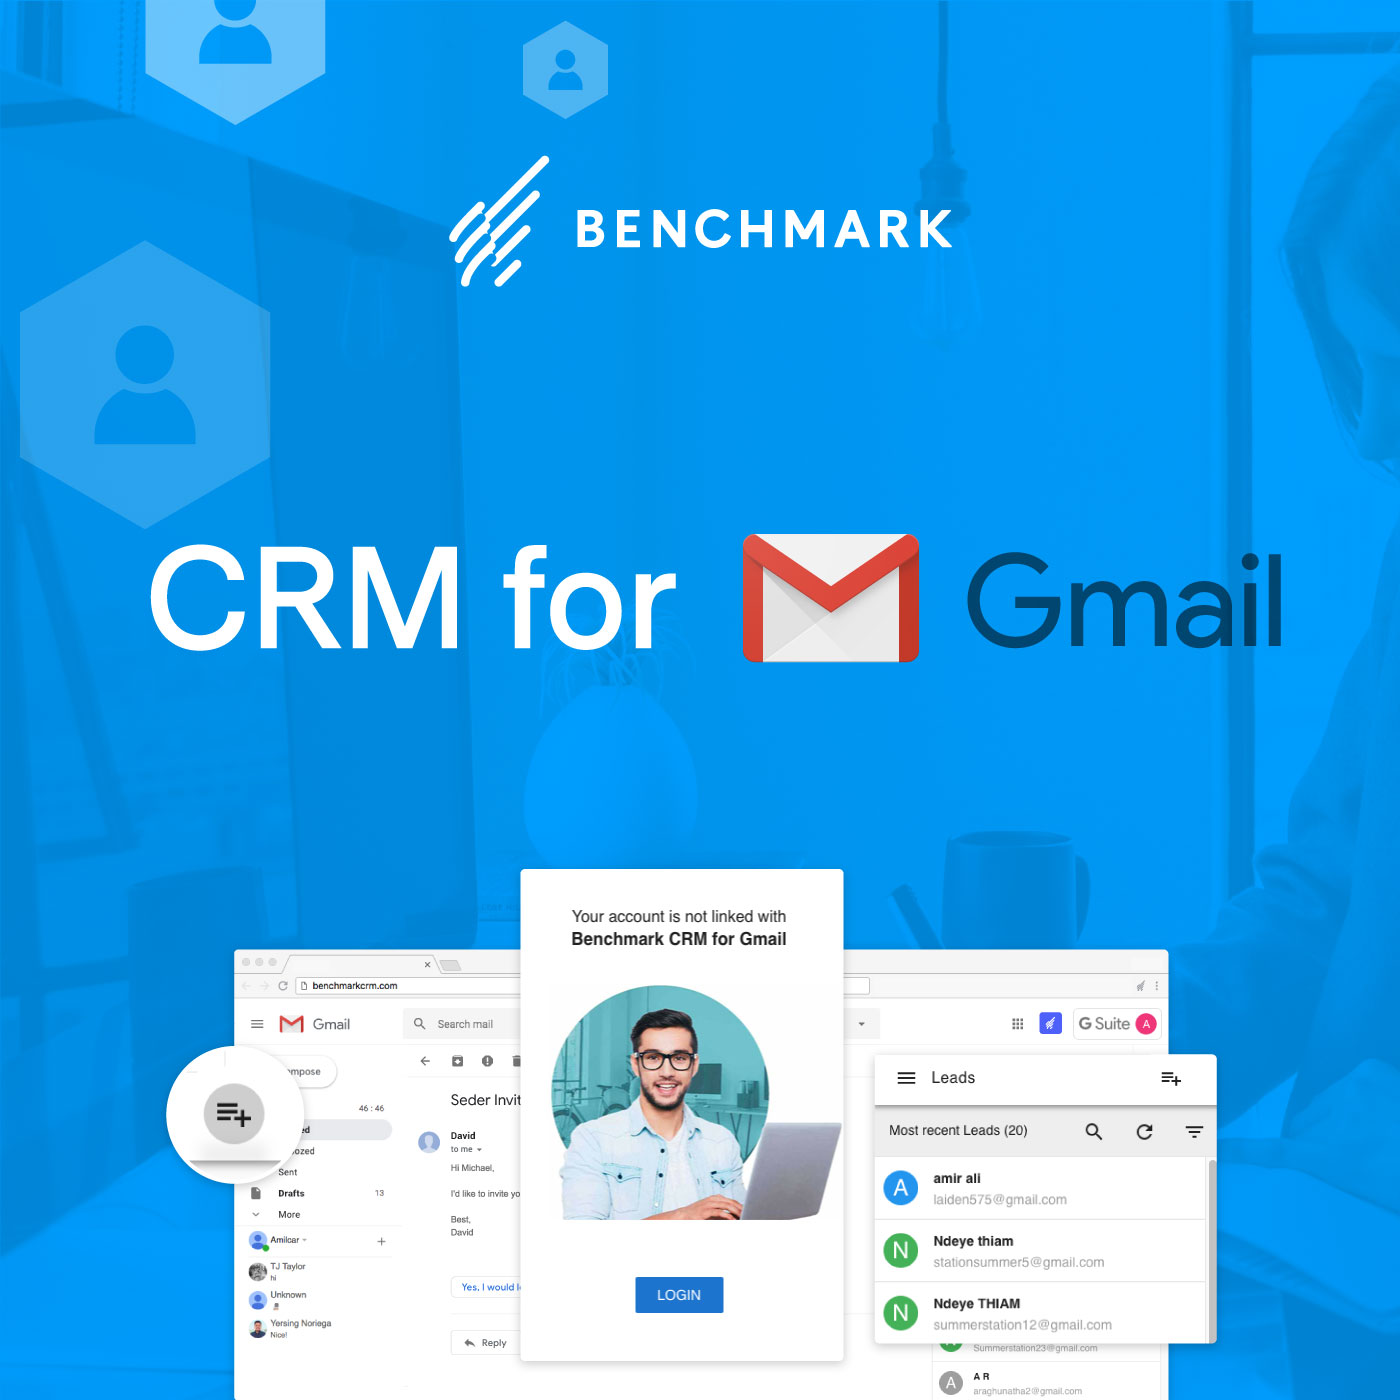 Benchmark CRM for Gmail